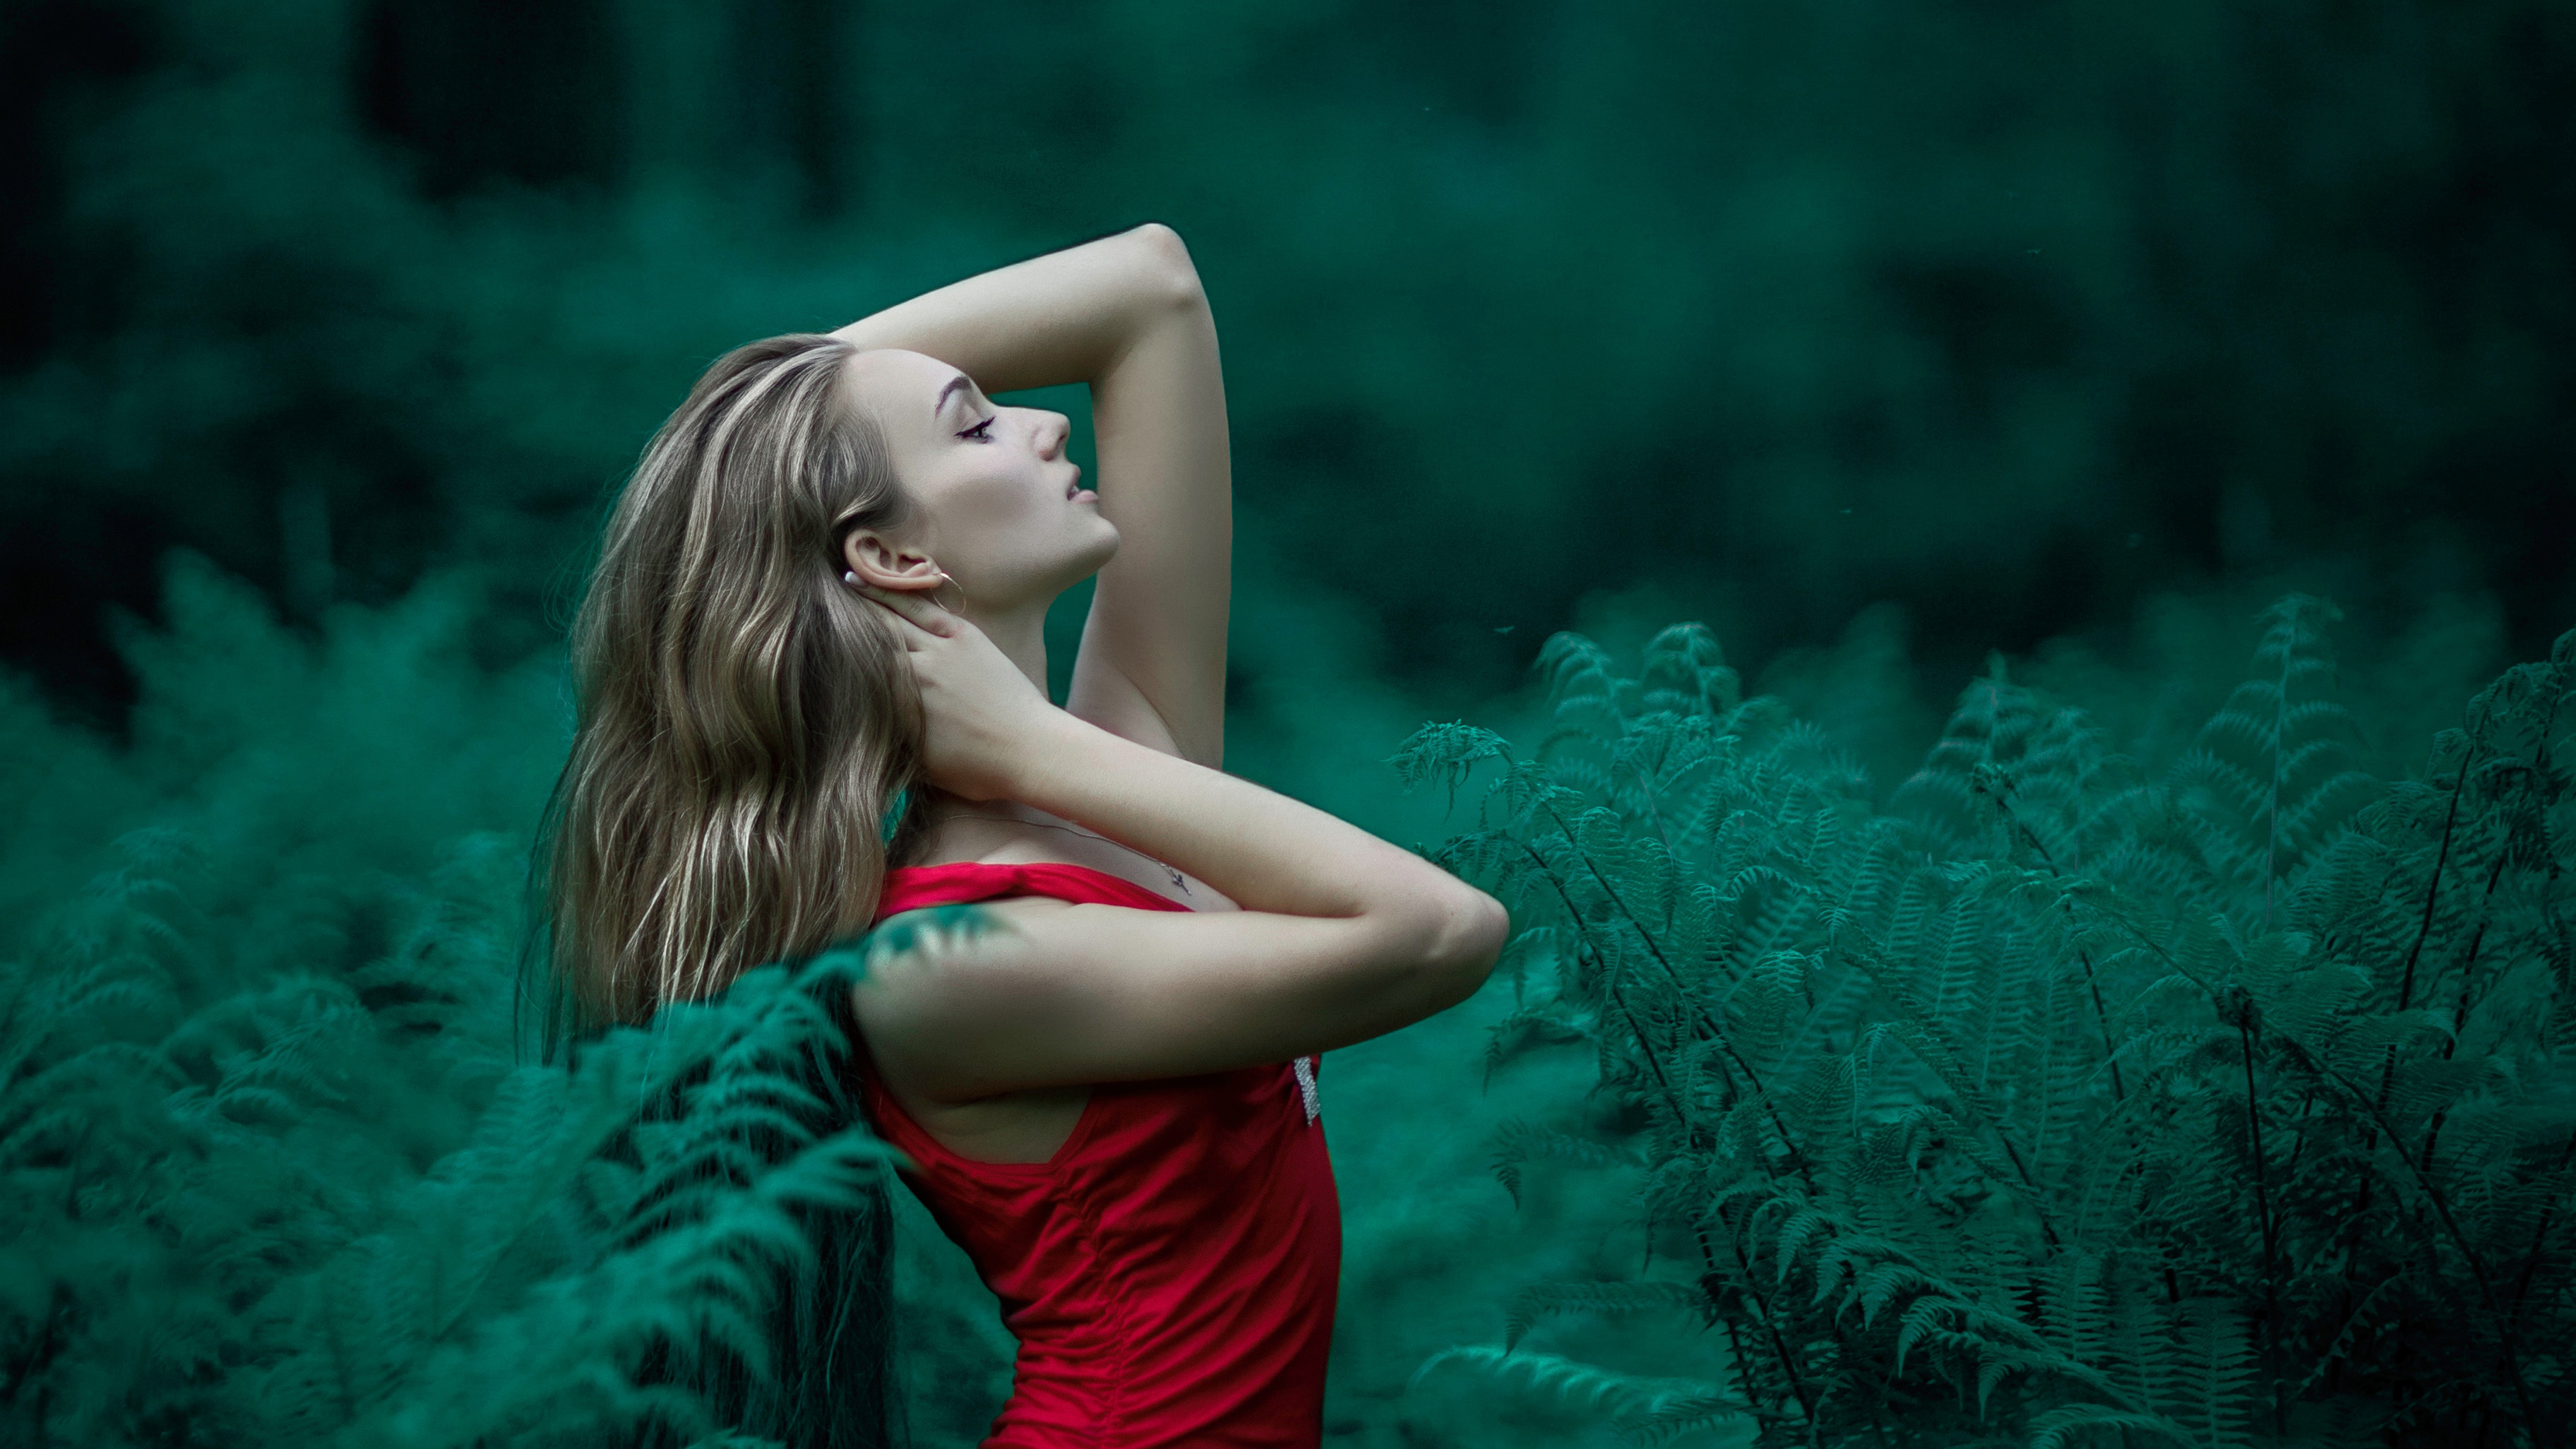 Red Dress Girl In Forest Hd Girls 4k Wallpapers Images